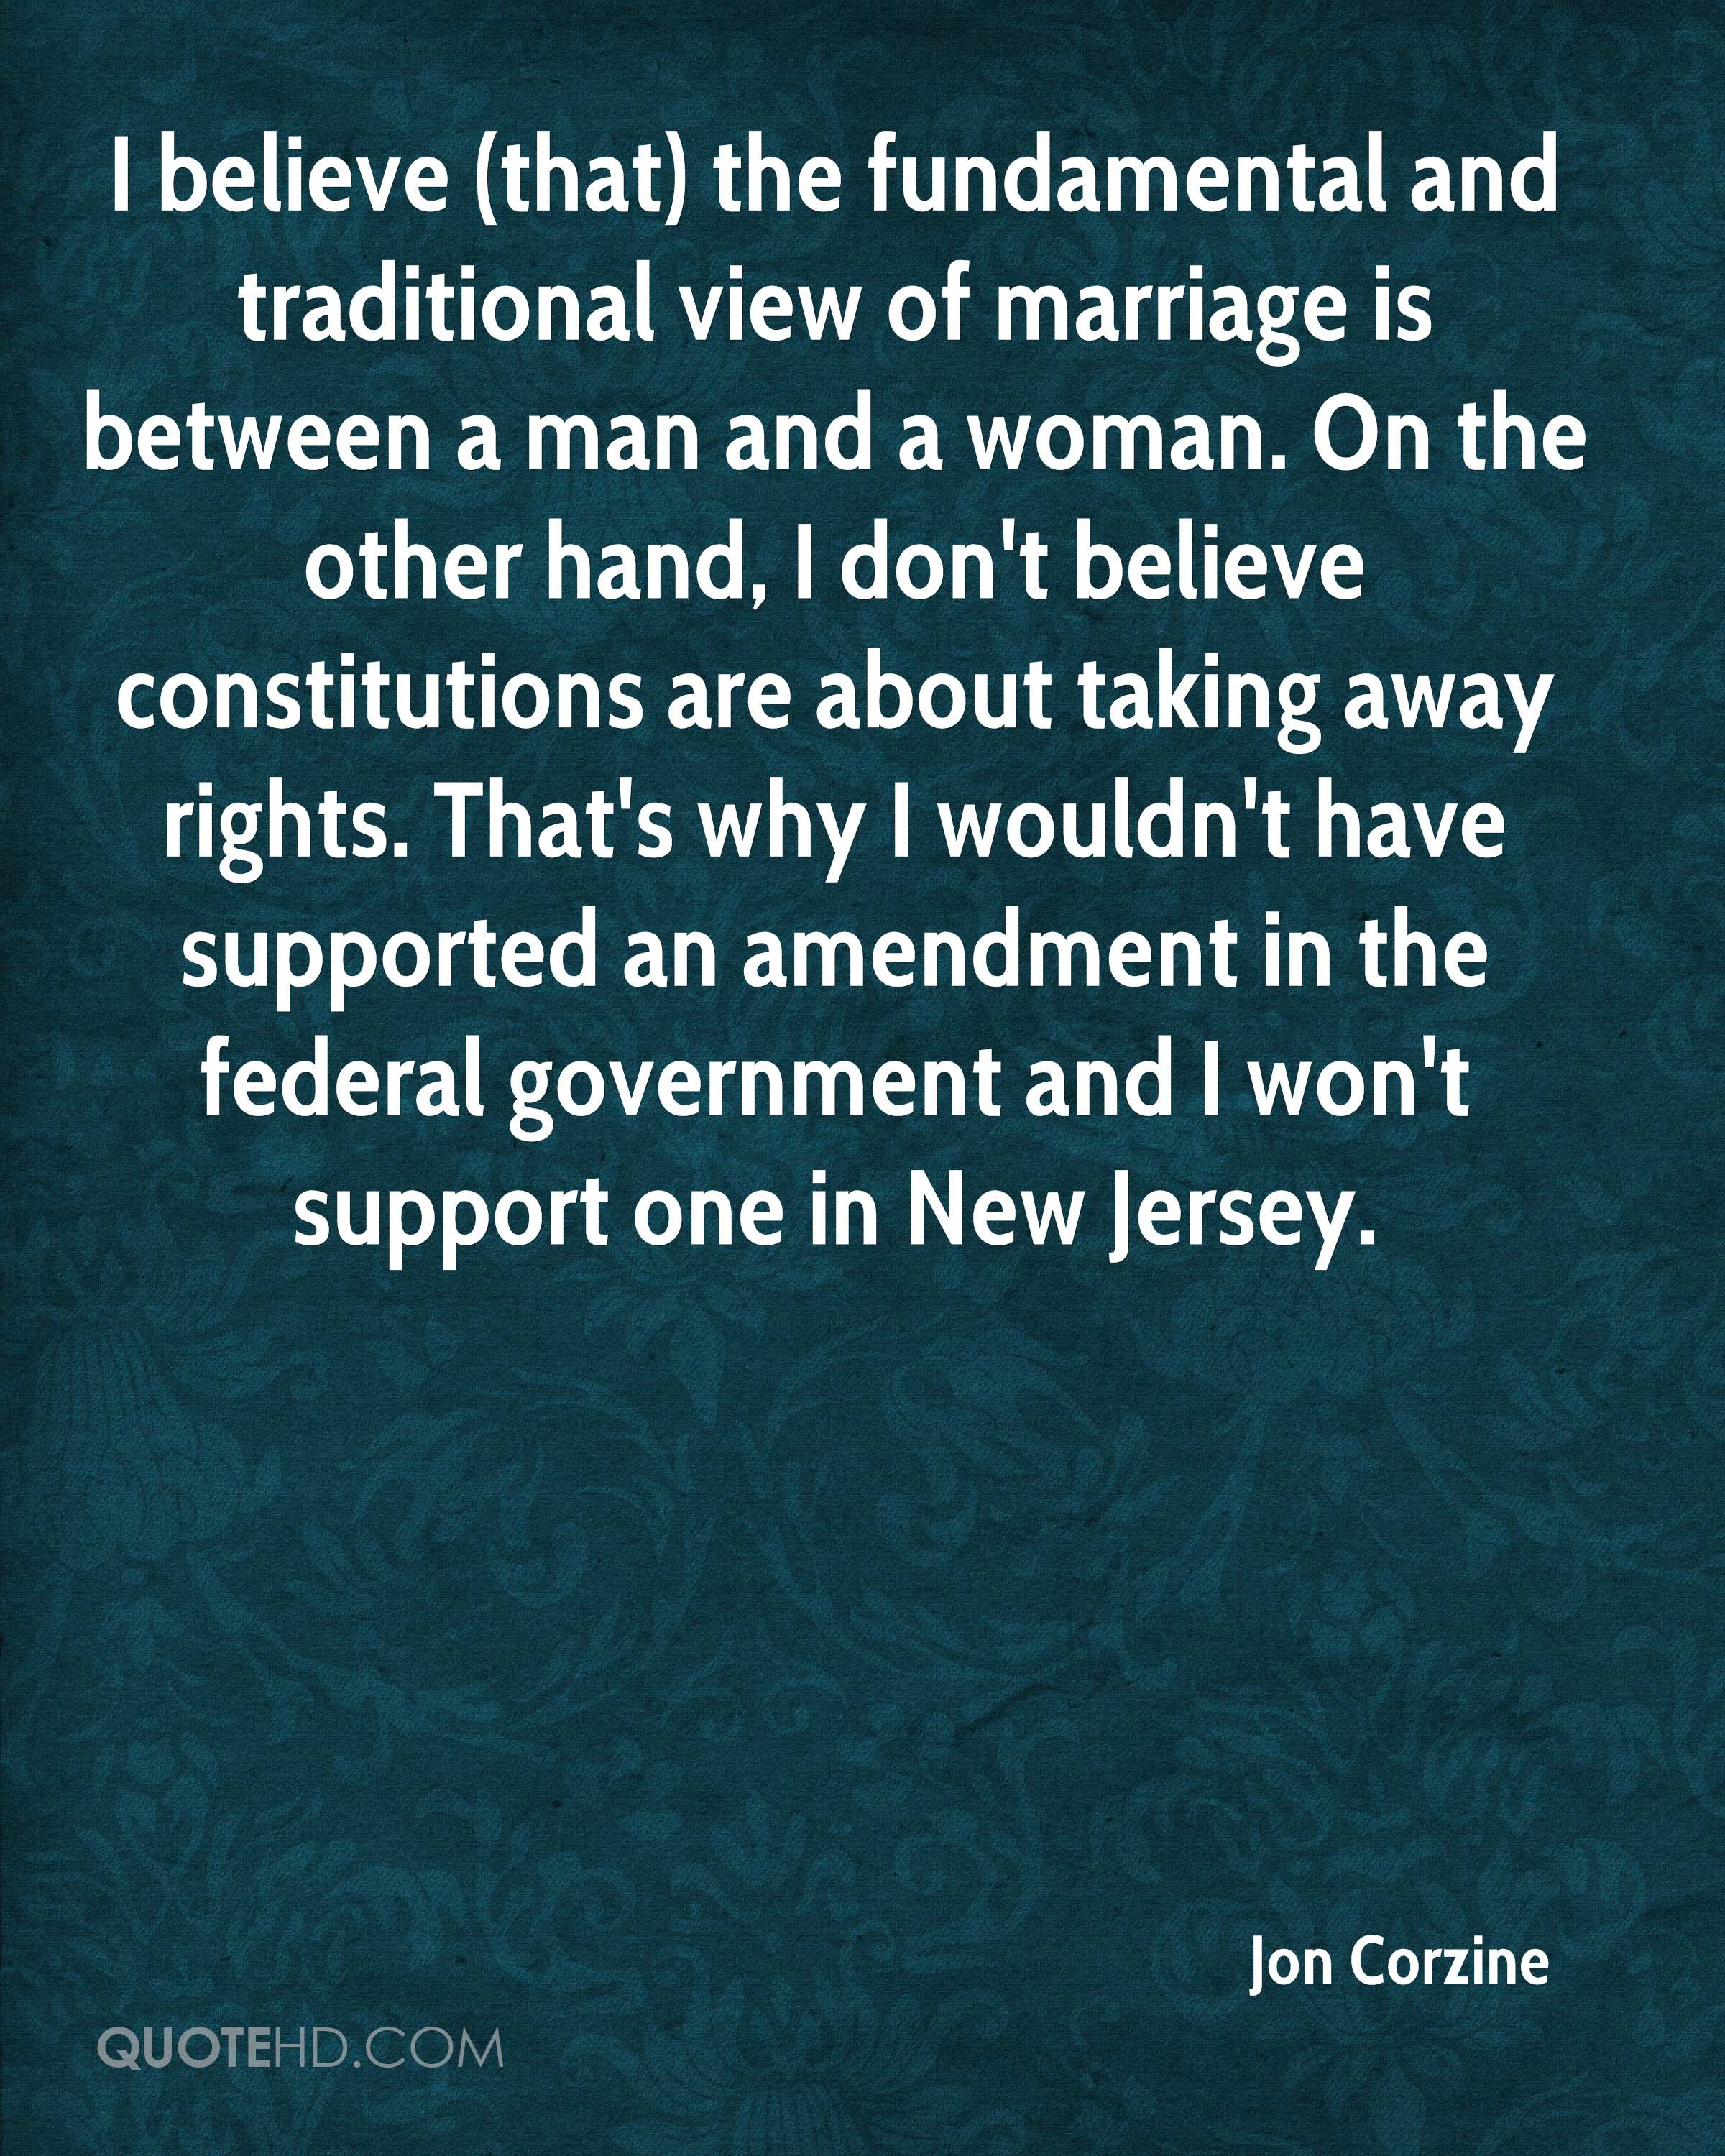 Traditional Marriage Quotes: Jon Corzine Marriage Quotes